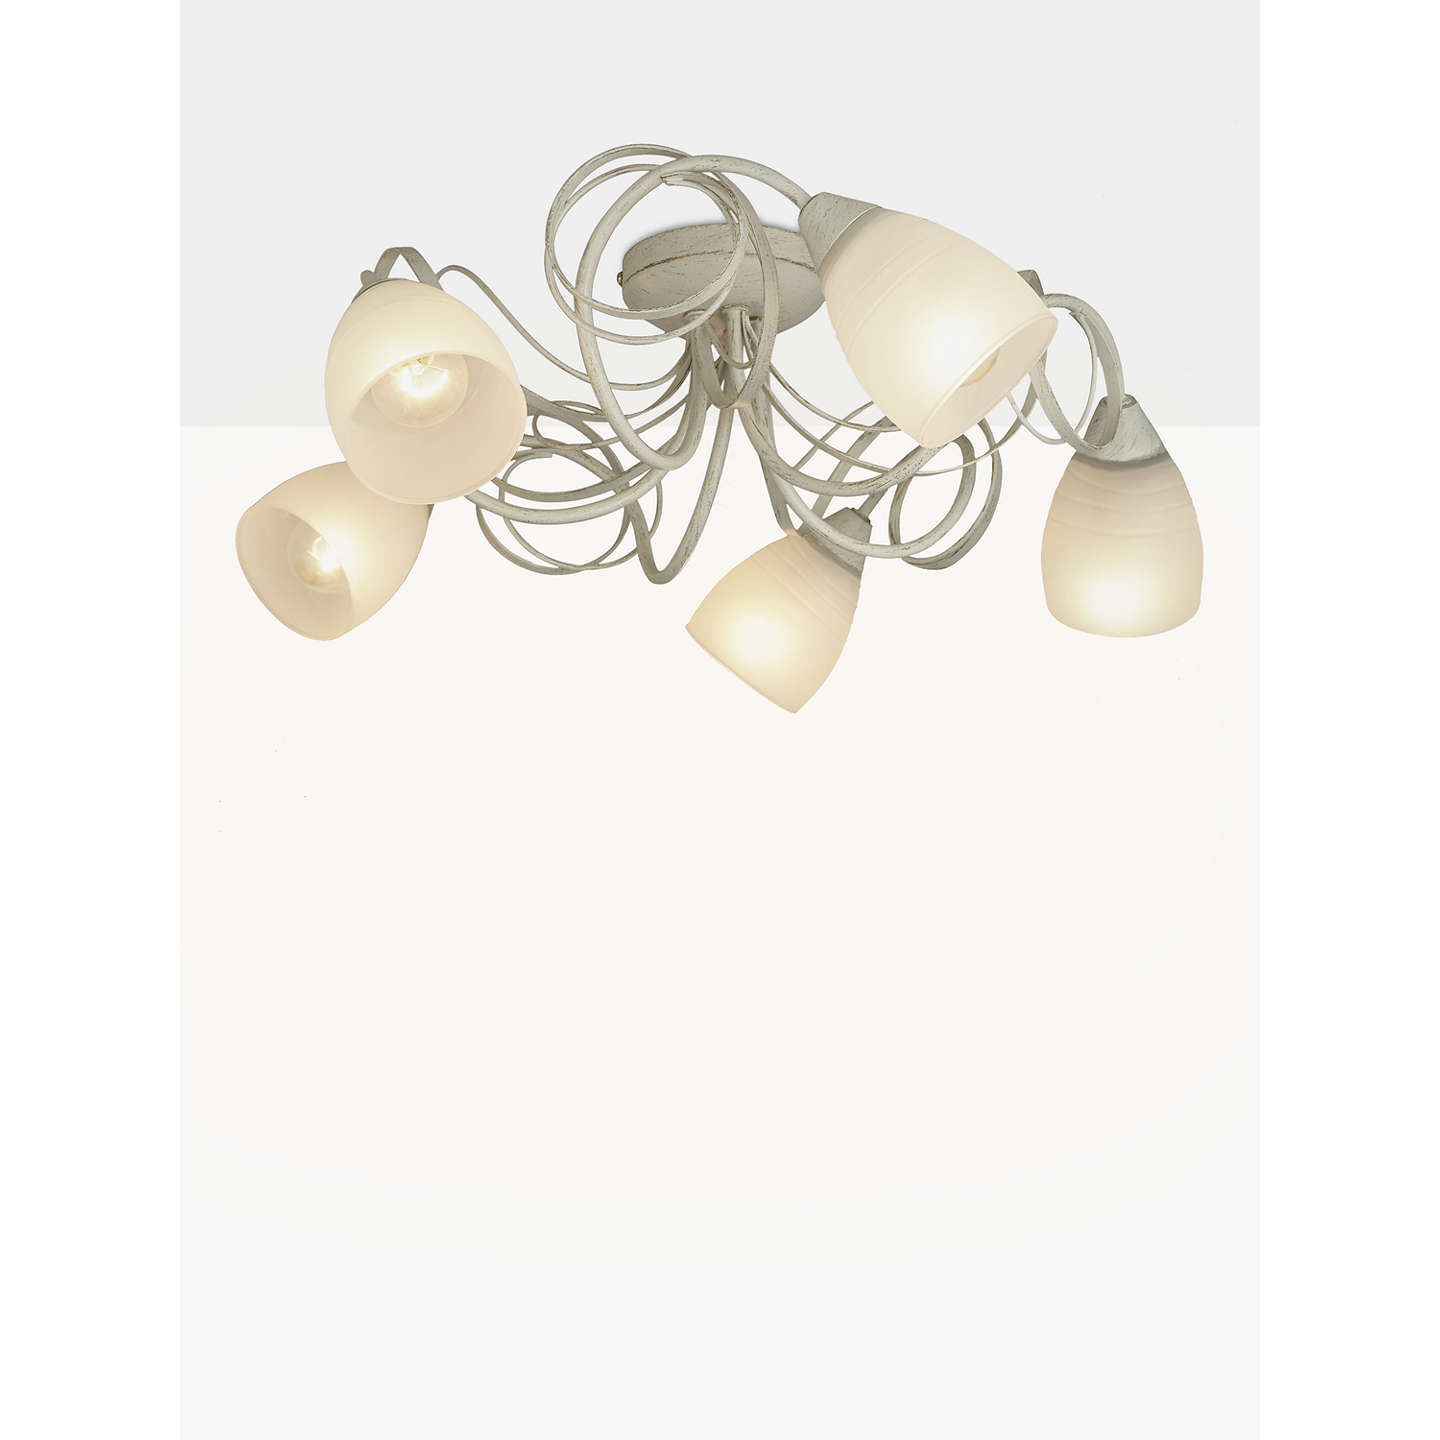 John lewis maisie semi flush ceiling light 5 light ivory at john lewis buyjohn lewis maisie semi flush ceiling light 5 light ivory online at johnlewis aloadofball Images